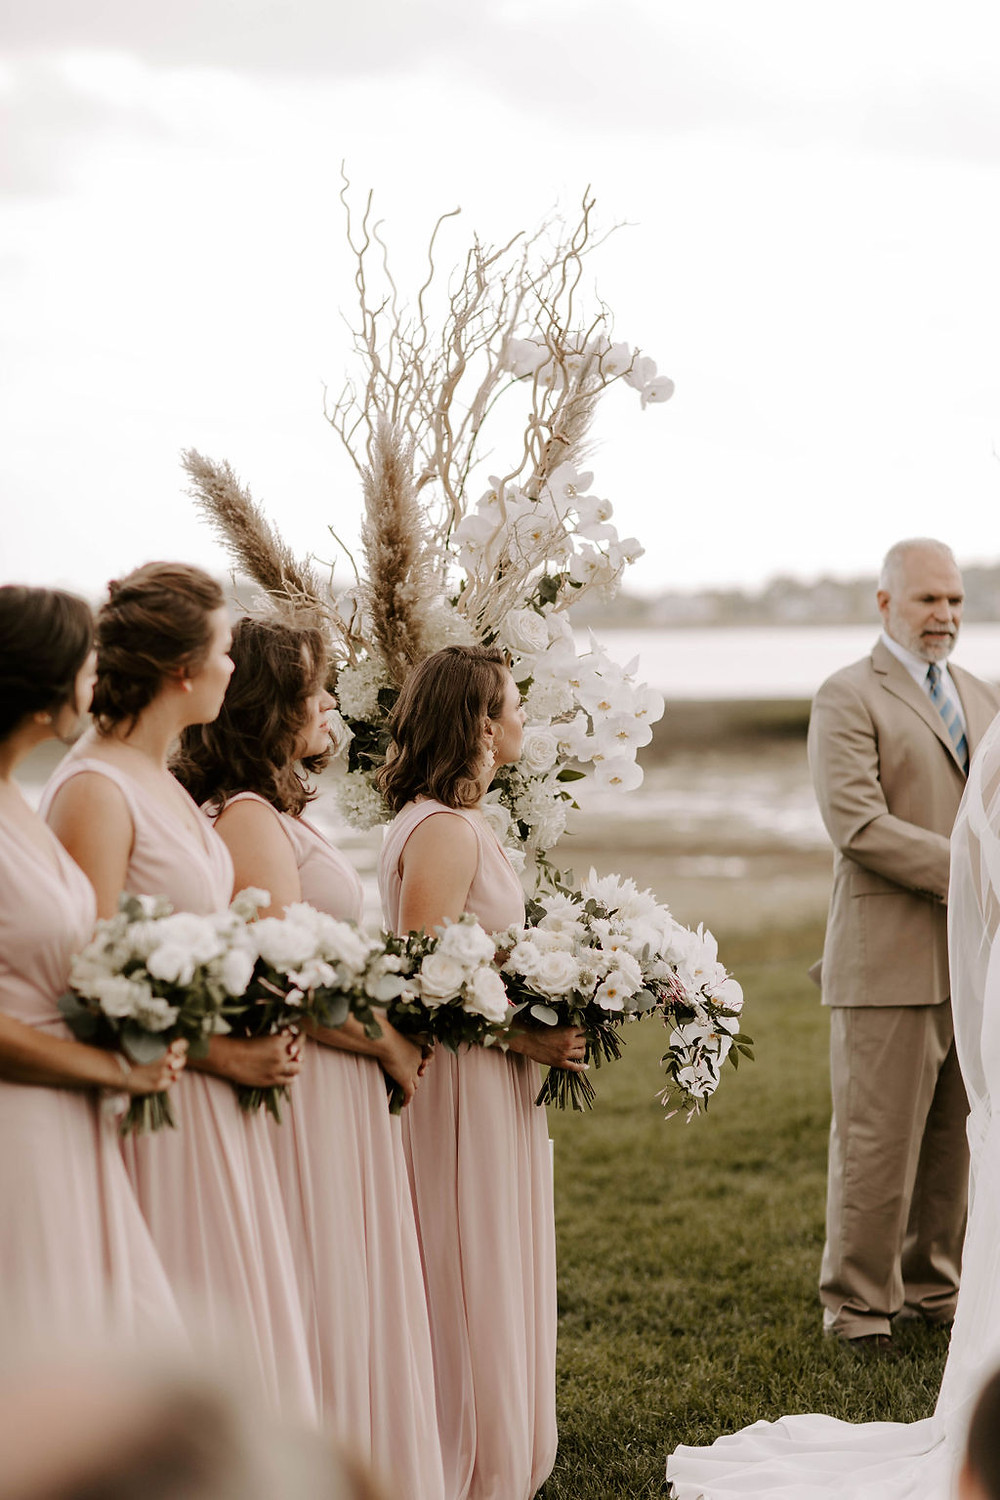 Blush bridesmaids dresses and white bouquets